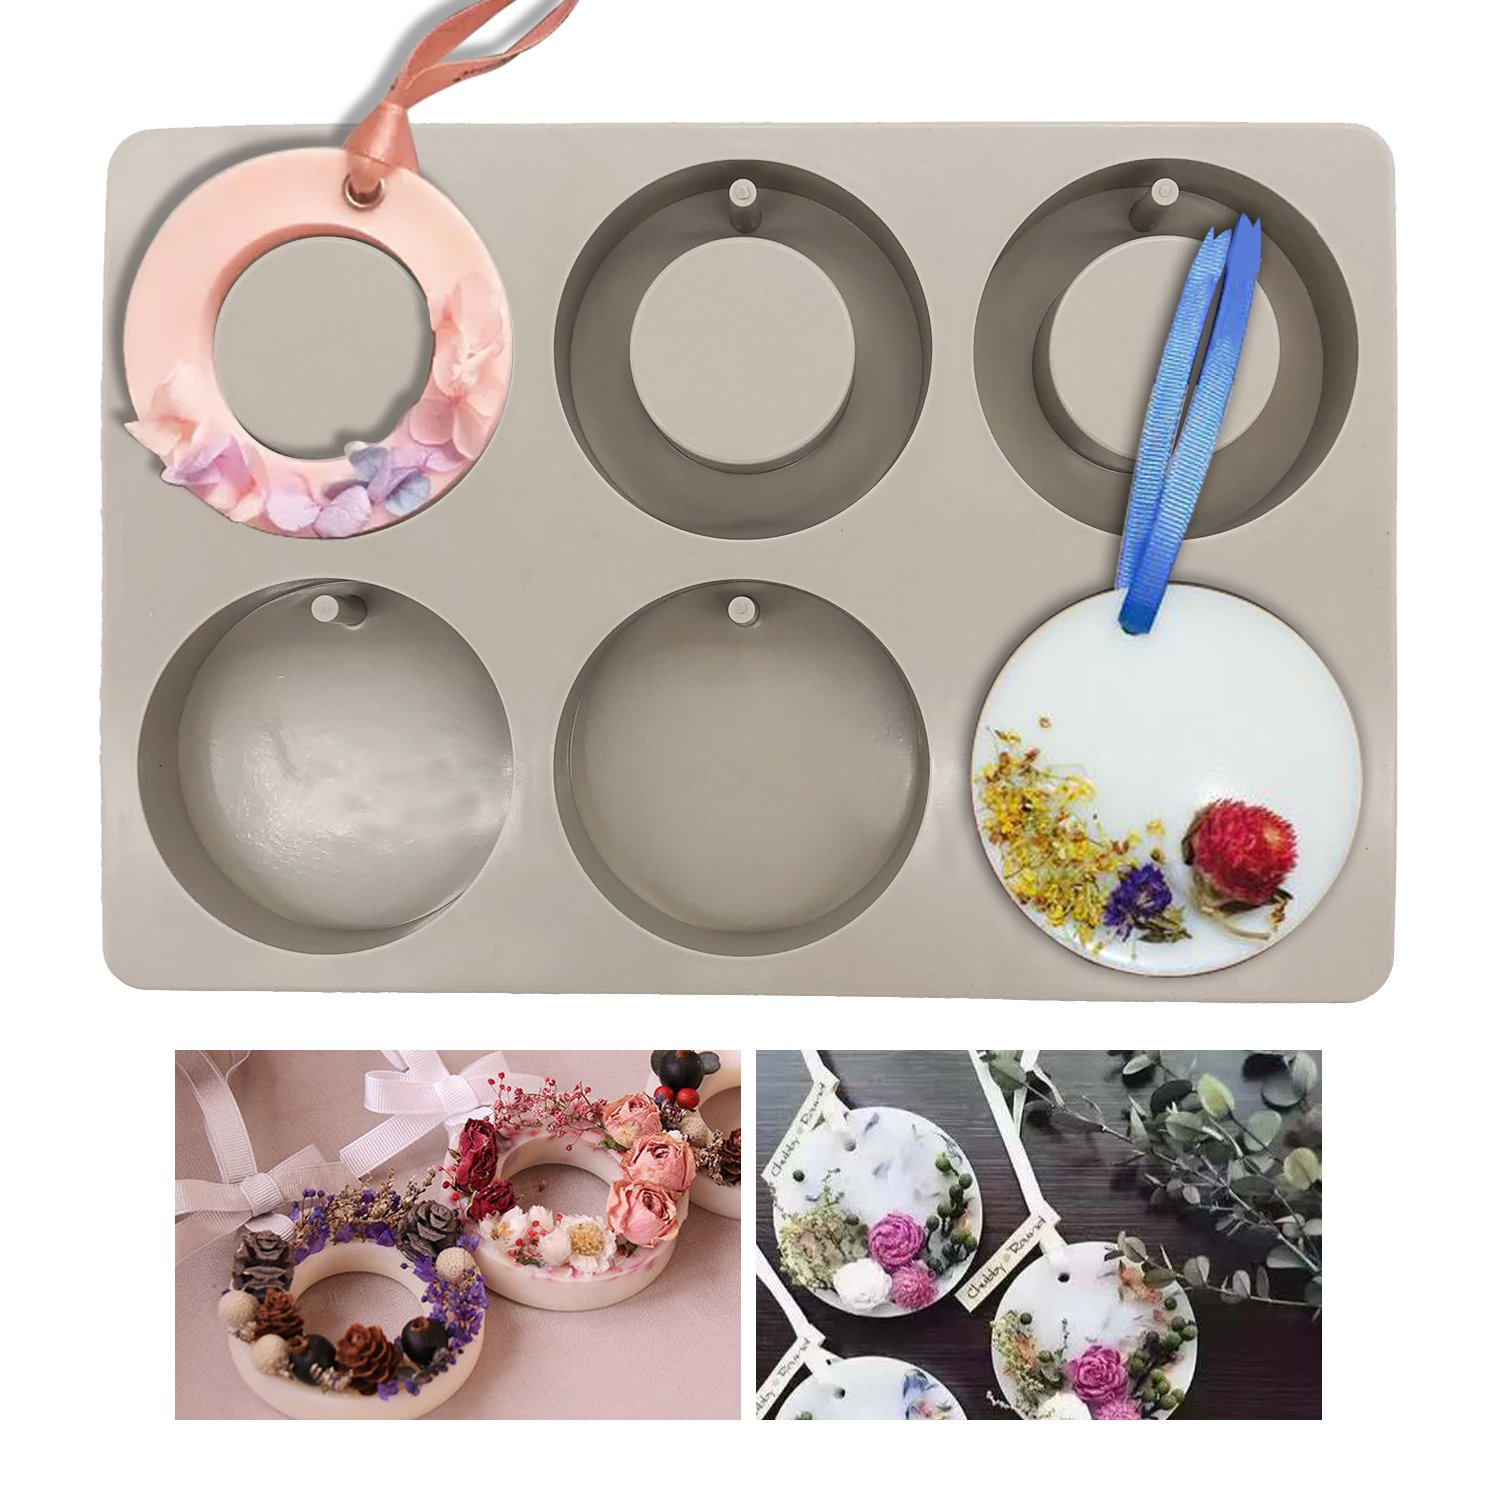 Silicone Wax Molds, KOOTIPS Round Ring Resin Jewelry Molds Making with Hanging Hole for DIY Jewelry Craft Making Kootips-1-4284